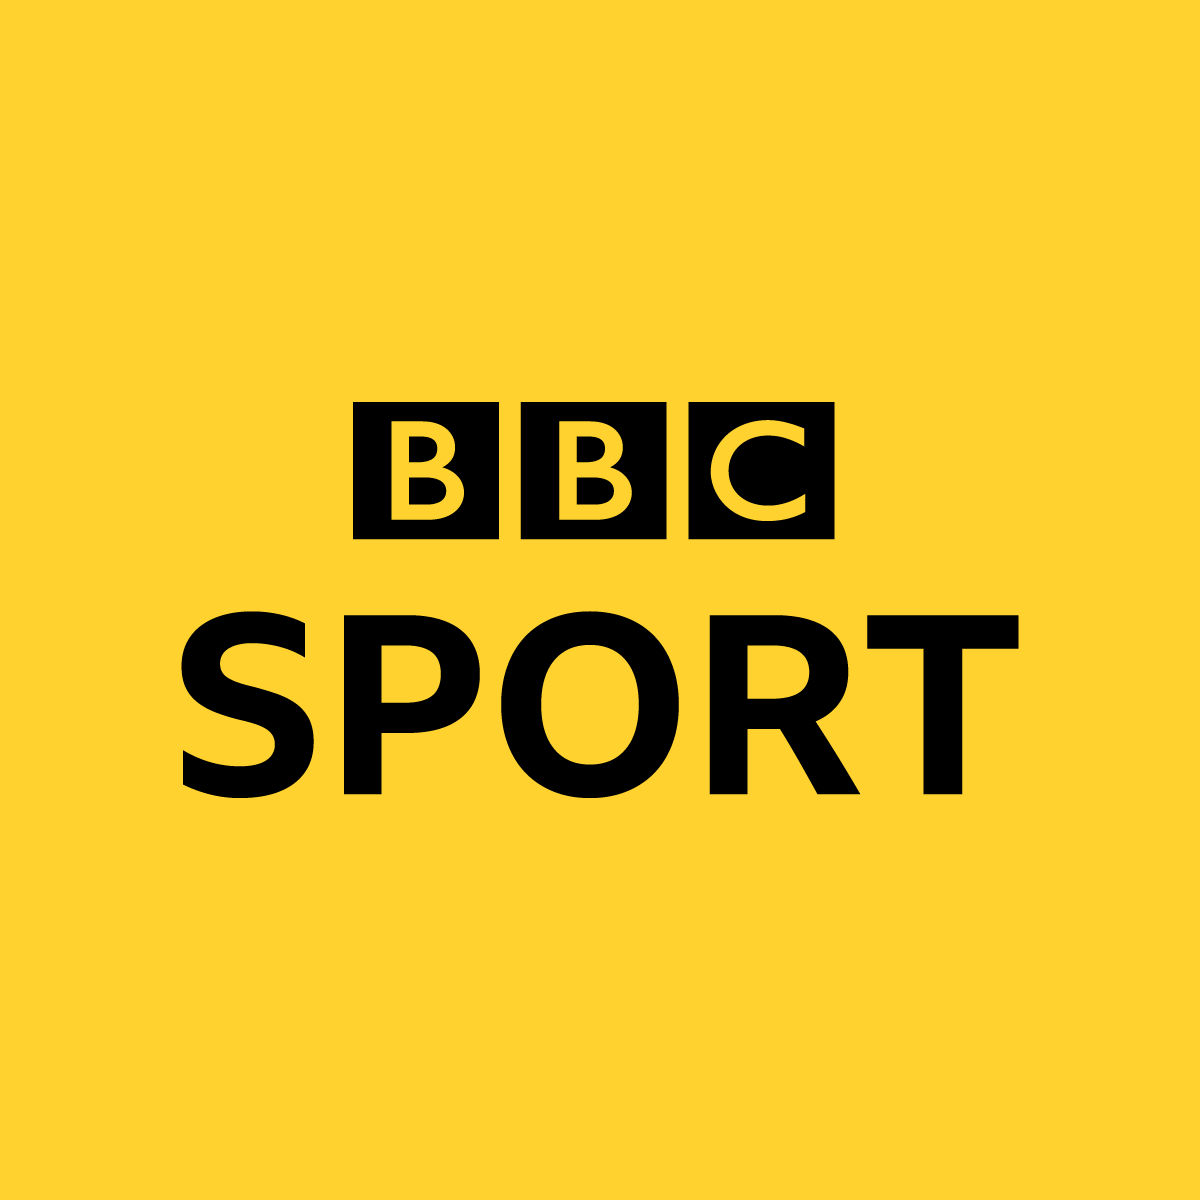 bbc sport logo - Play-off final: Livingston v Partick Thistle